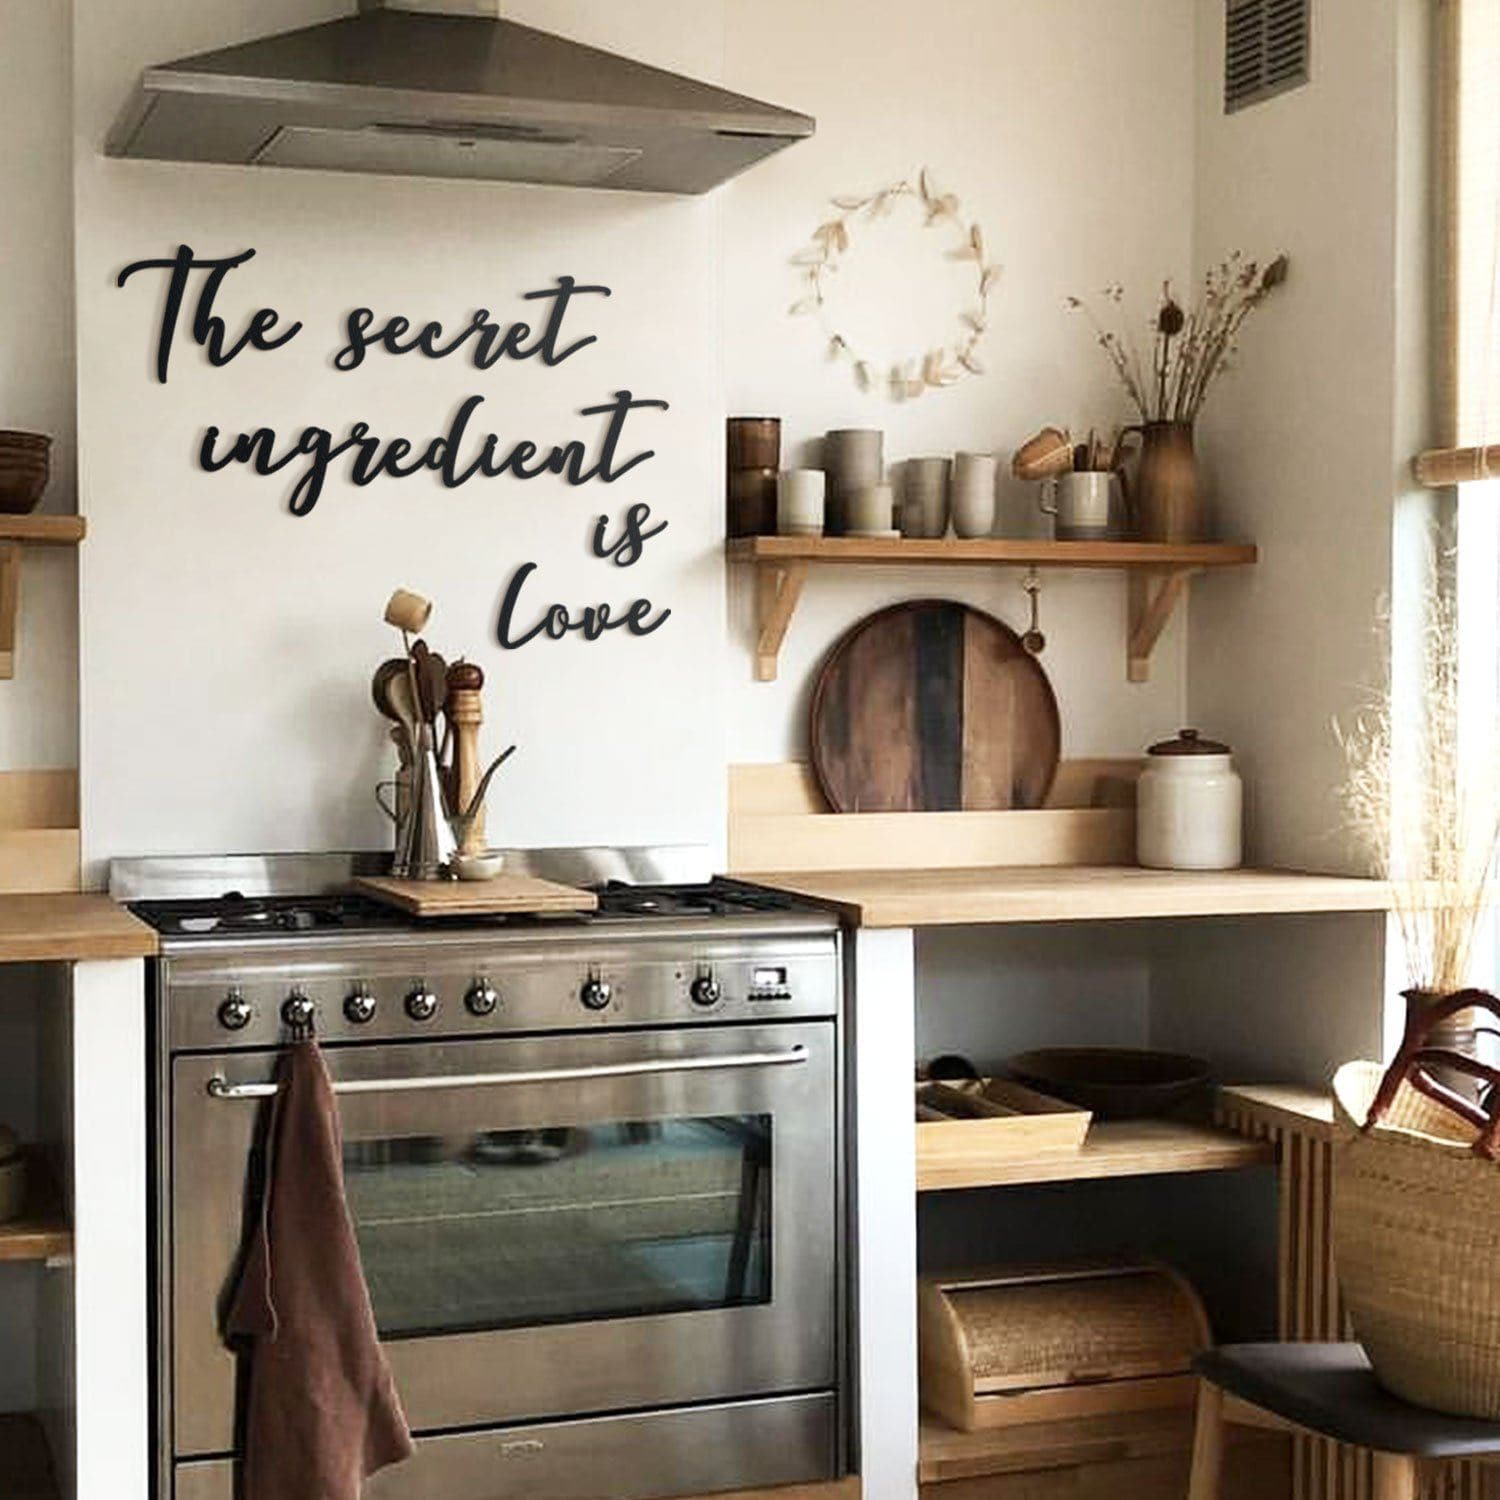 The Secret Ingredient Is Love Kitchen Decor Wall Art Posters Handmade Products